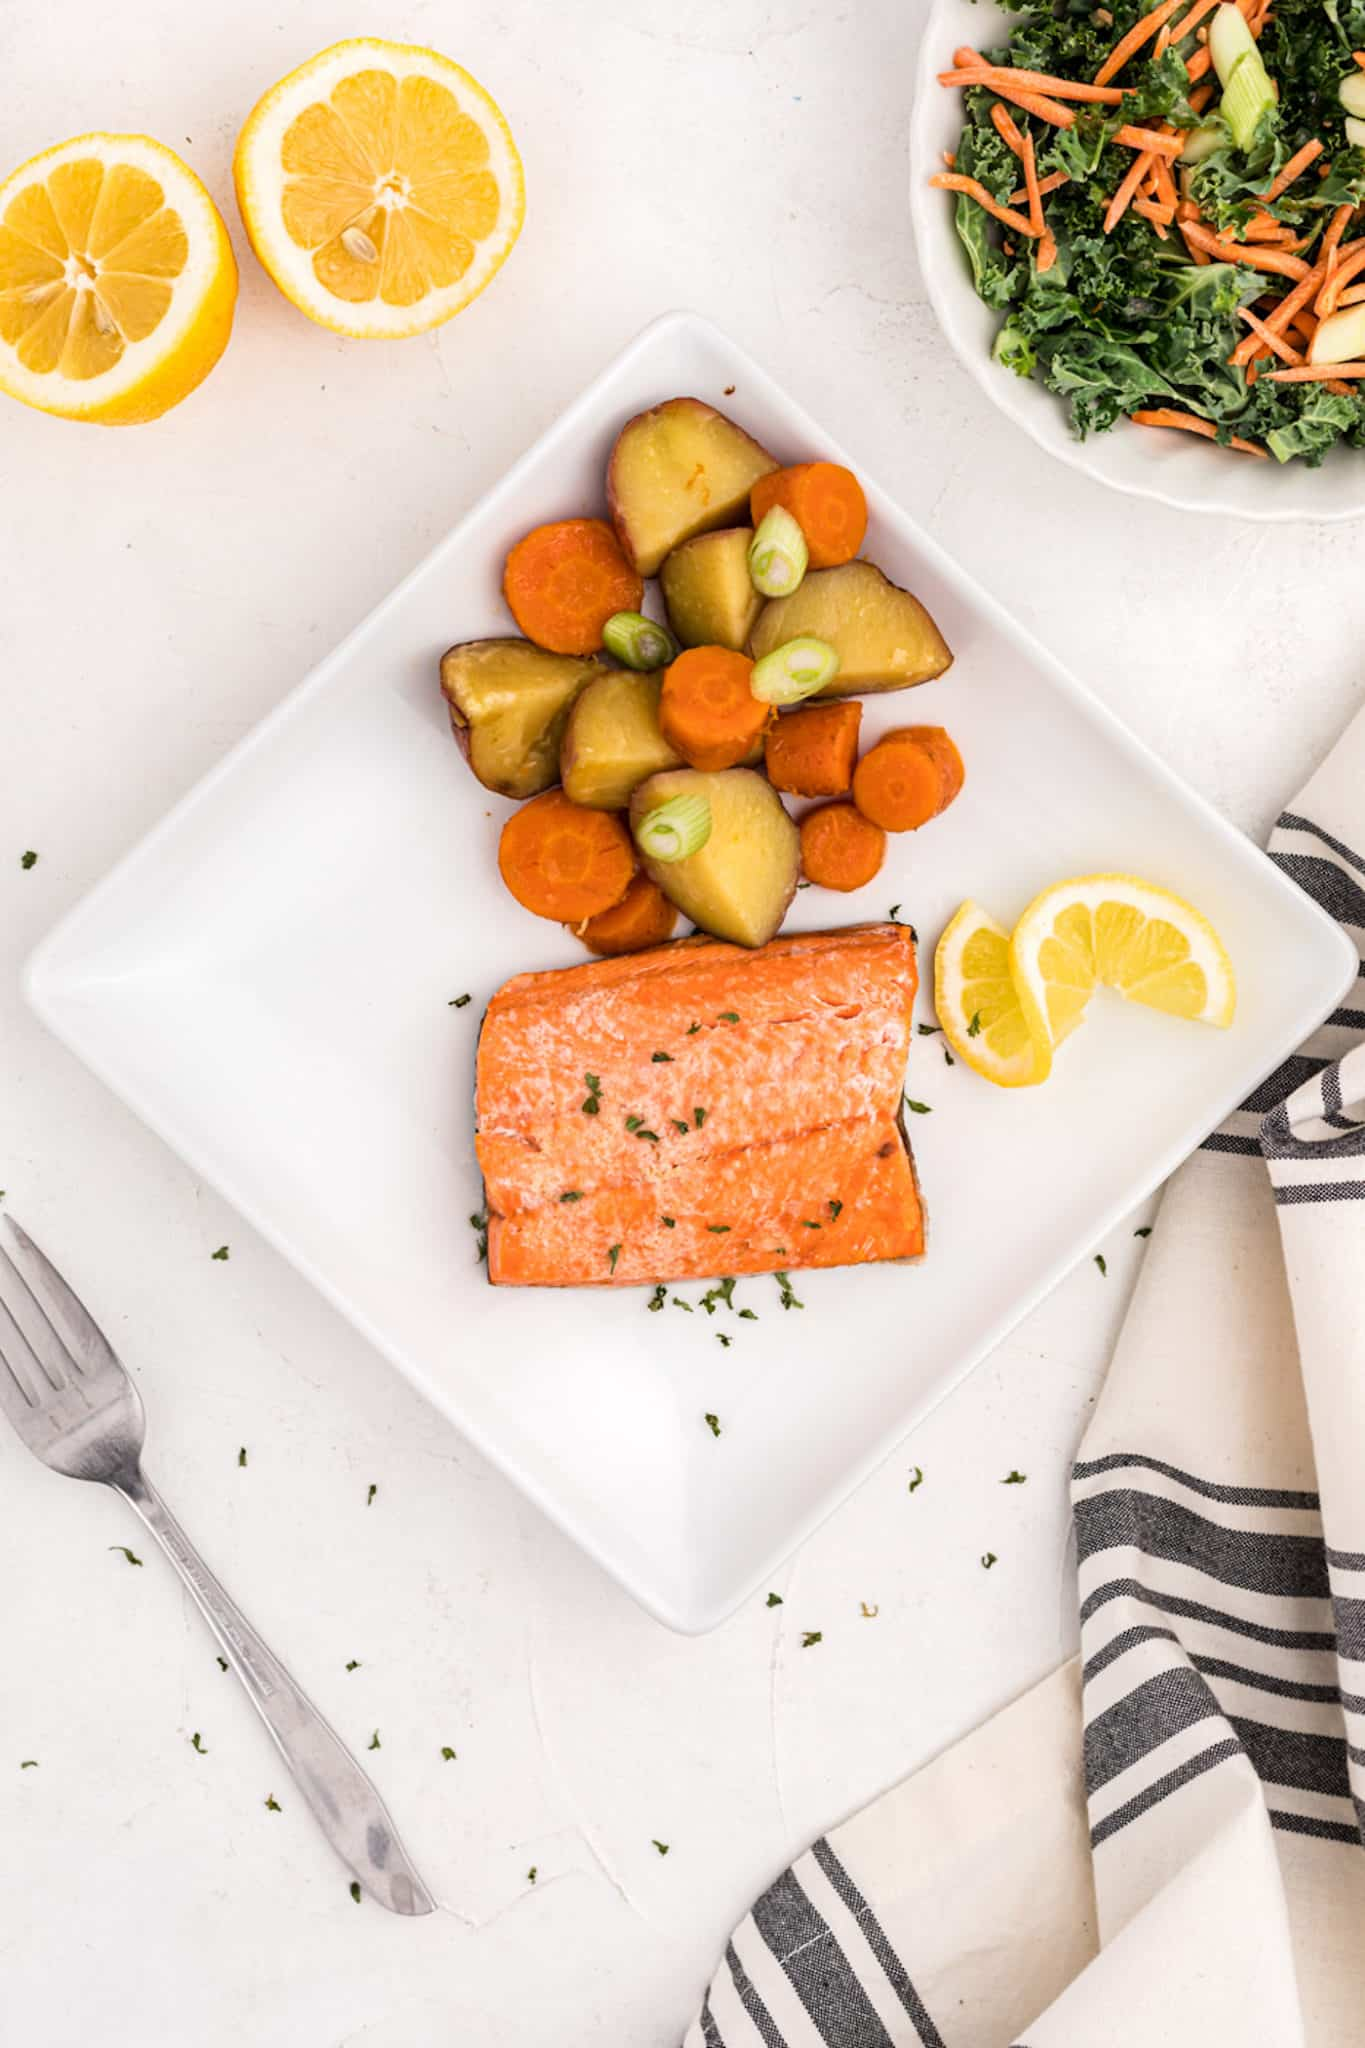 salmon with carrots and potatoes